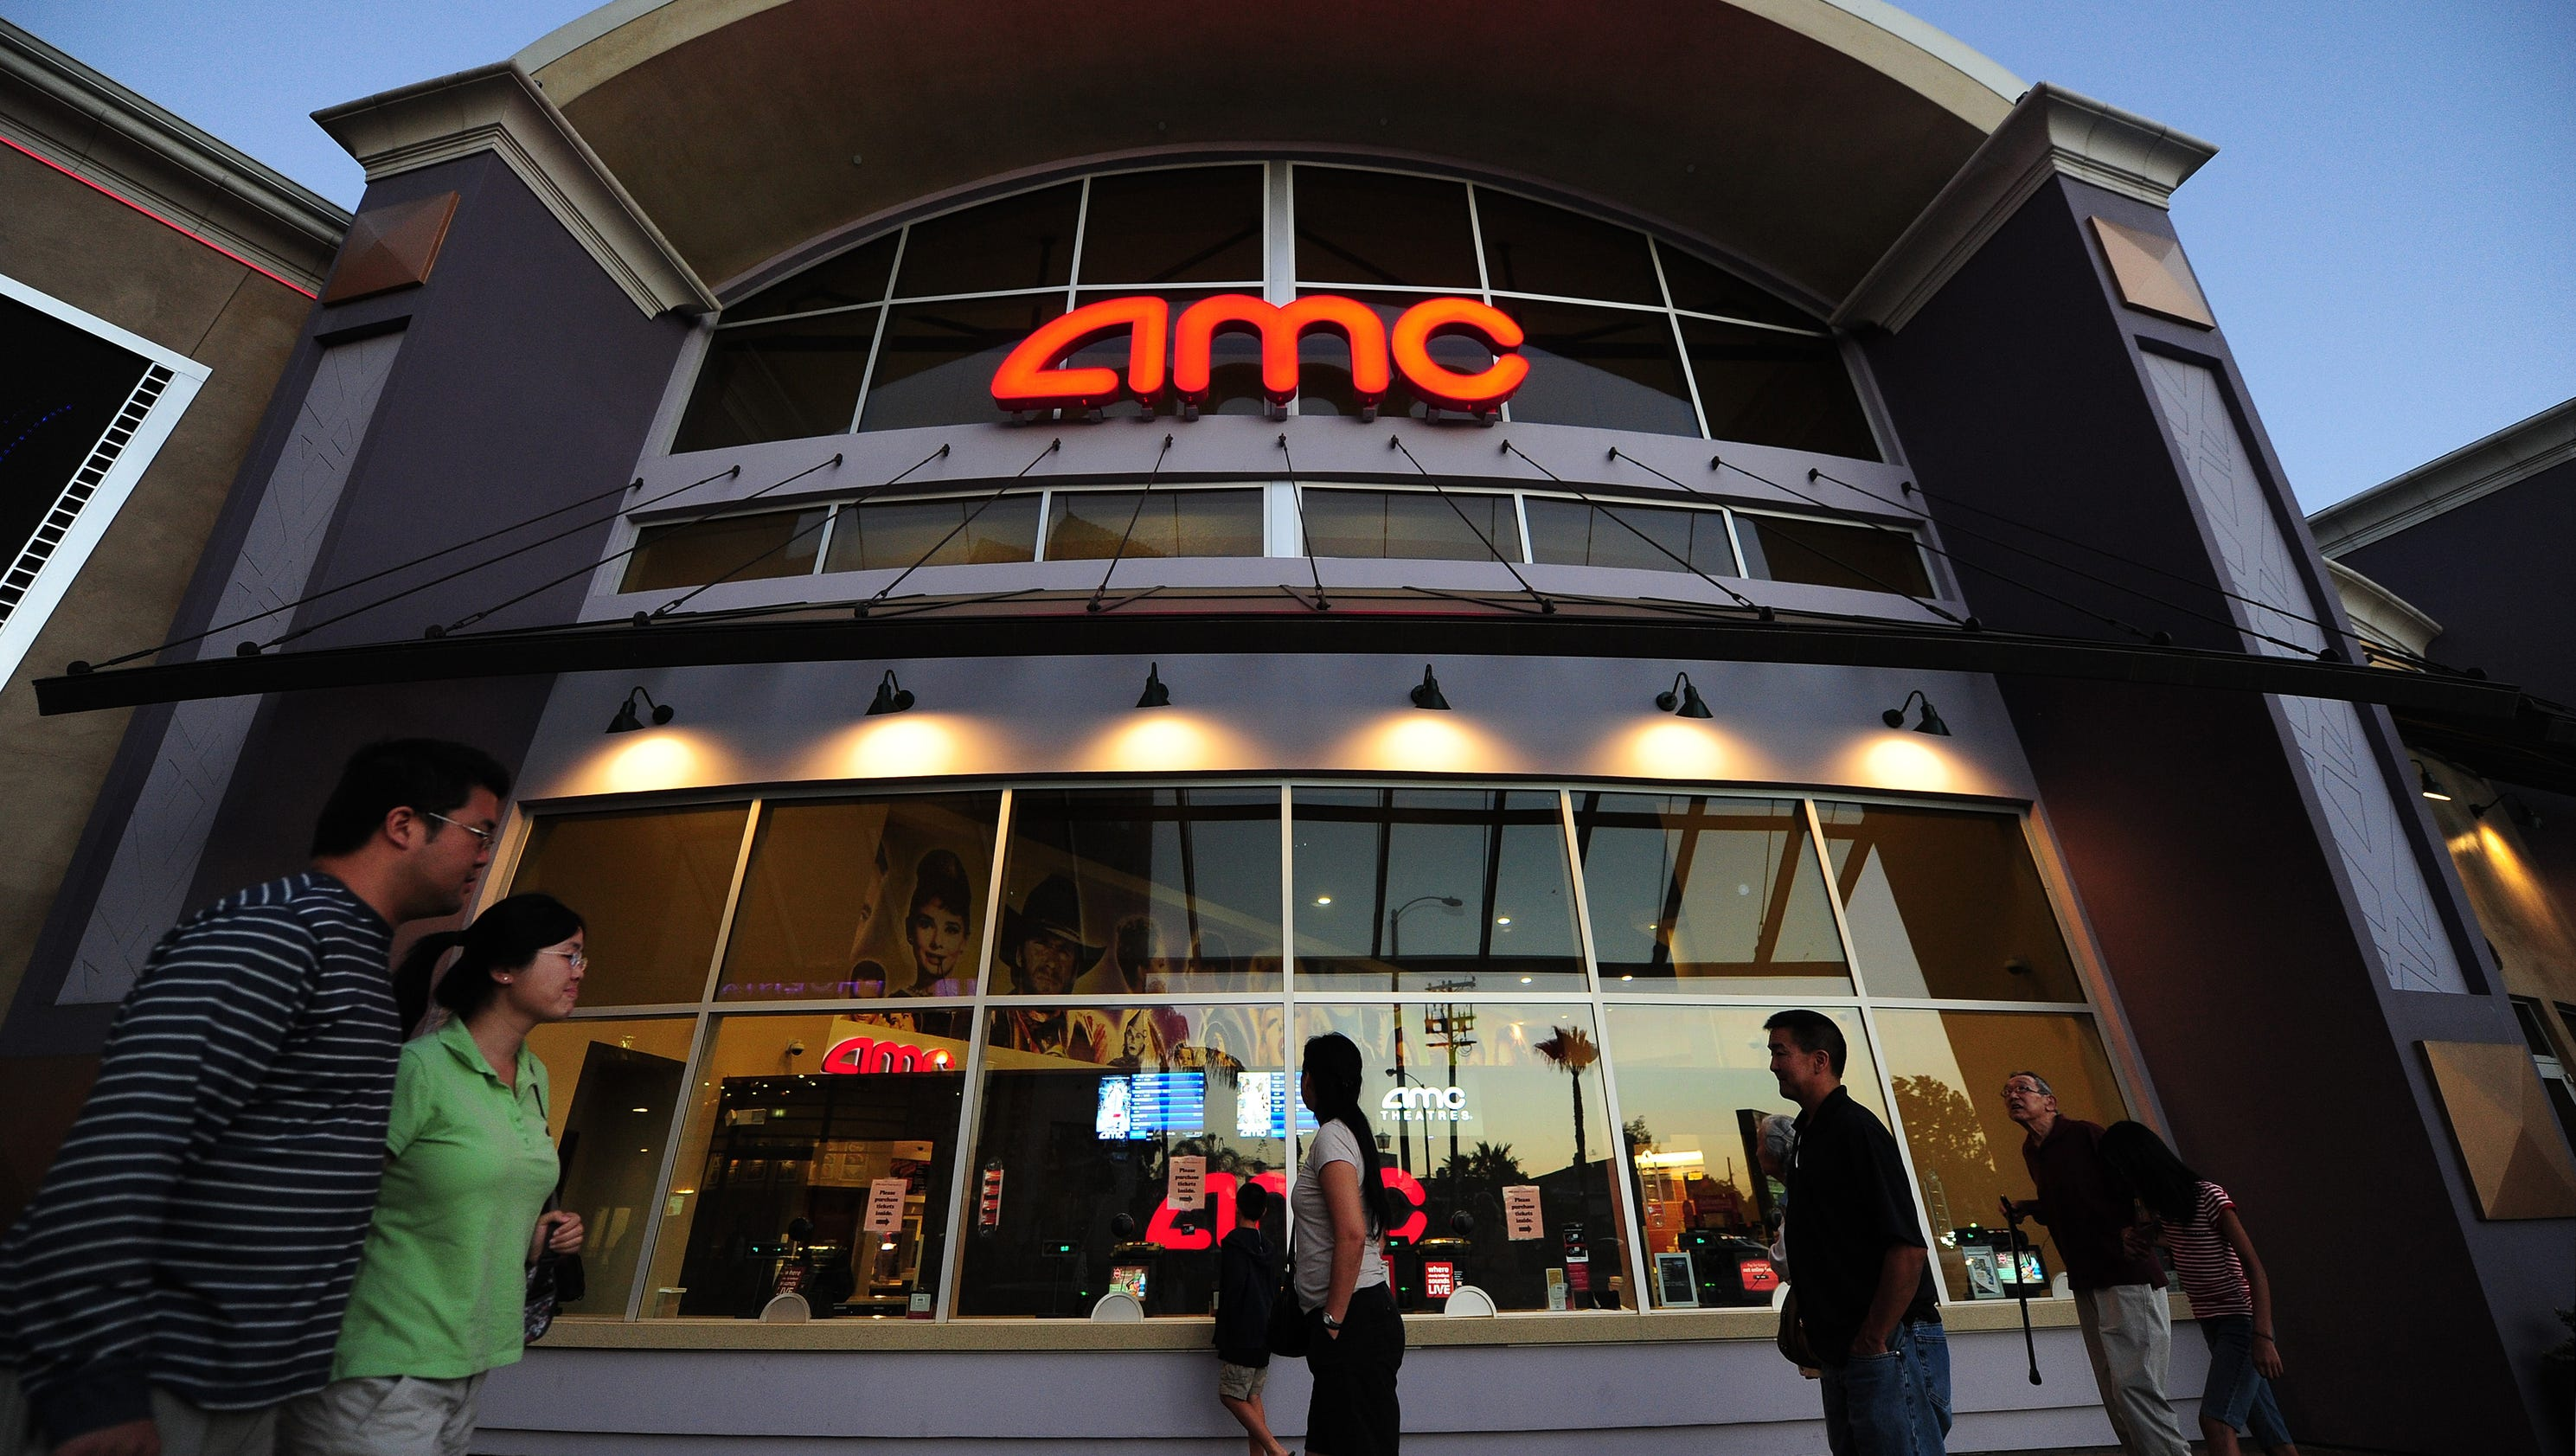 MoviePass pulls support from popular AMC theaters - The Verge